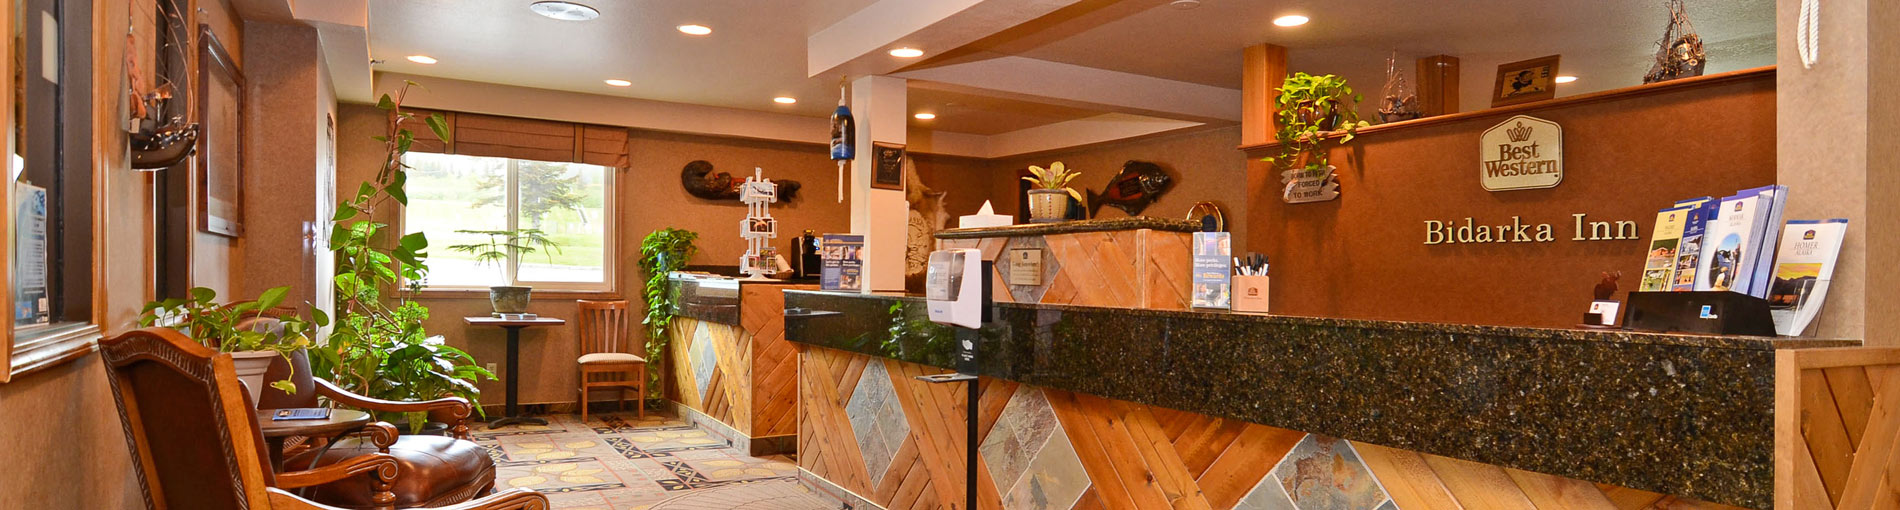 Book your Alaskan adventure at the Best Western Bidarka Inn